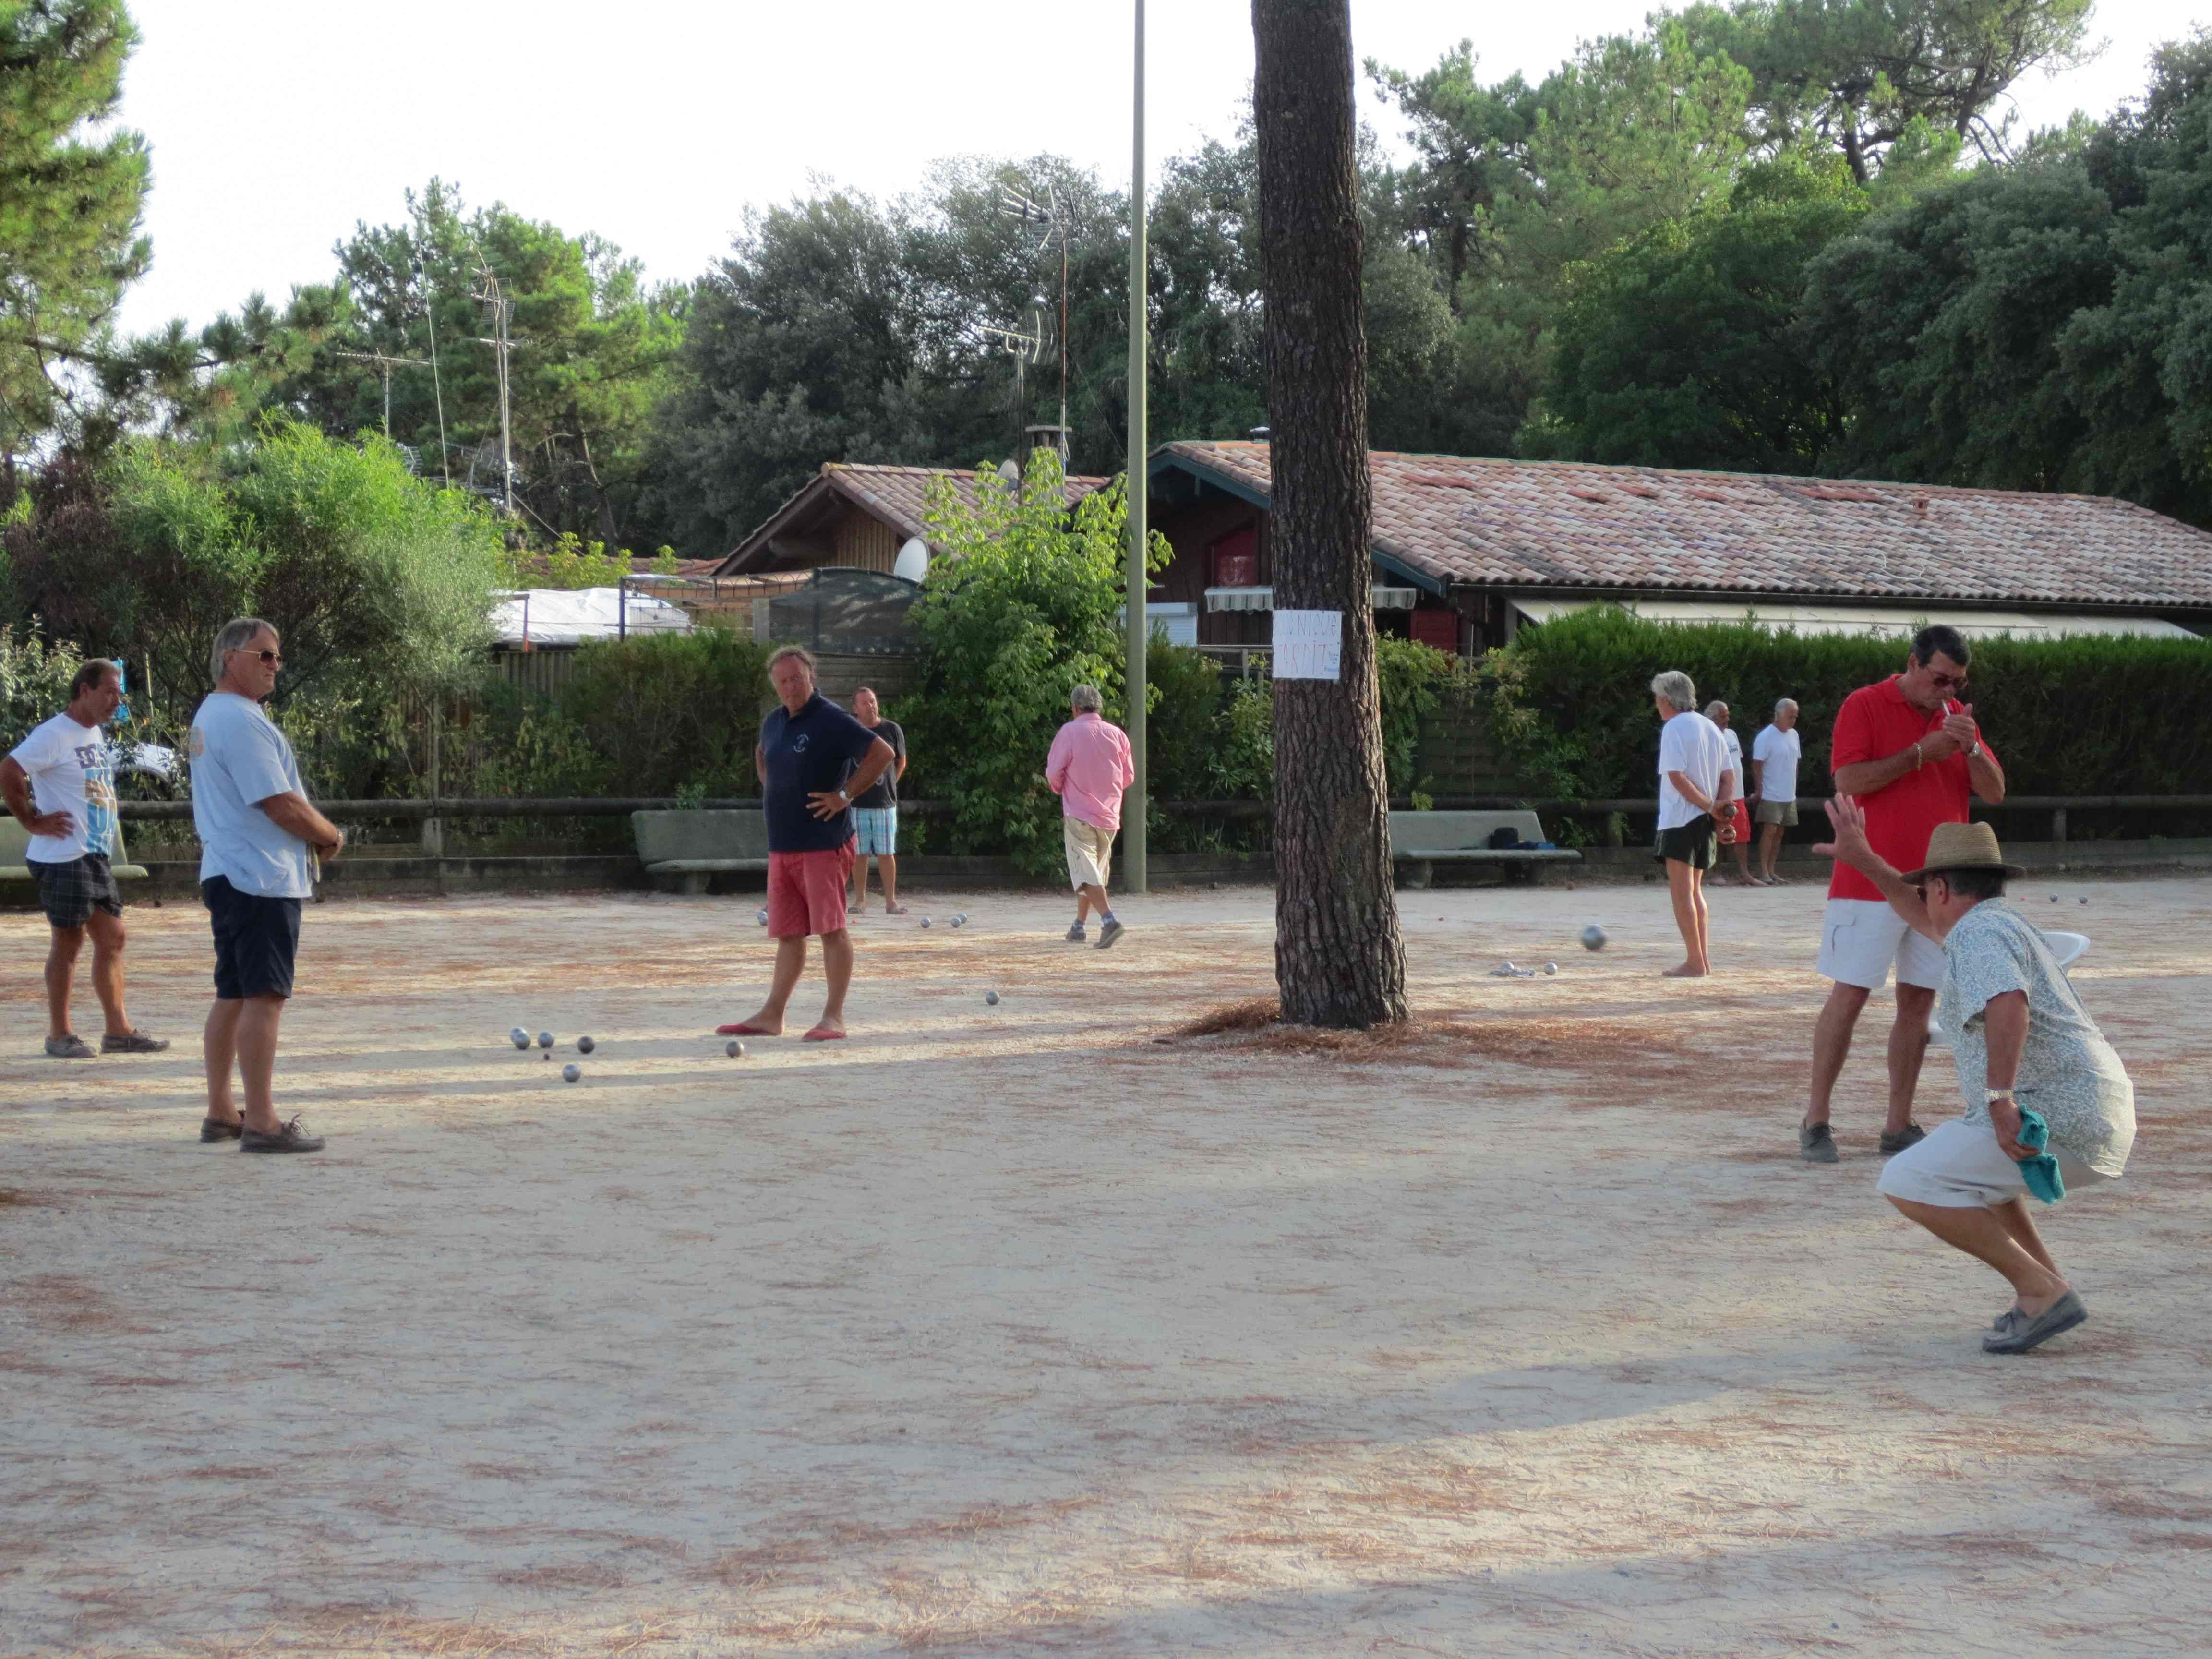 People playing pétanque - traditional french summer sport - Cap-Ferret 2012 | Photo credit: Jana Kravitz